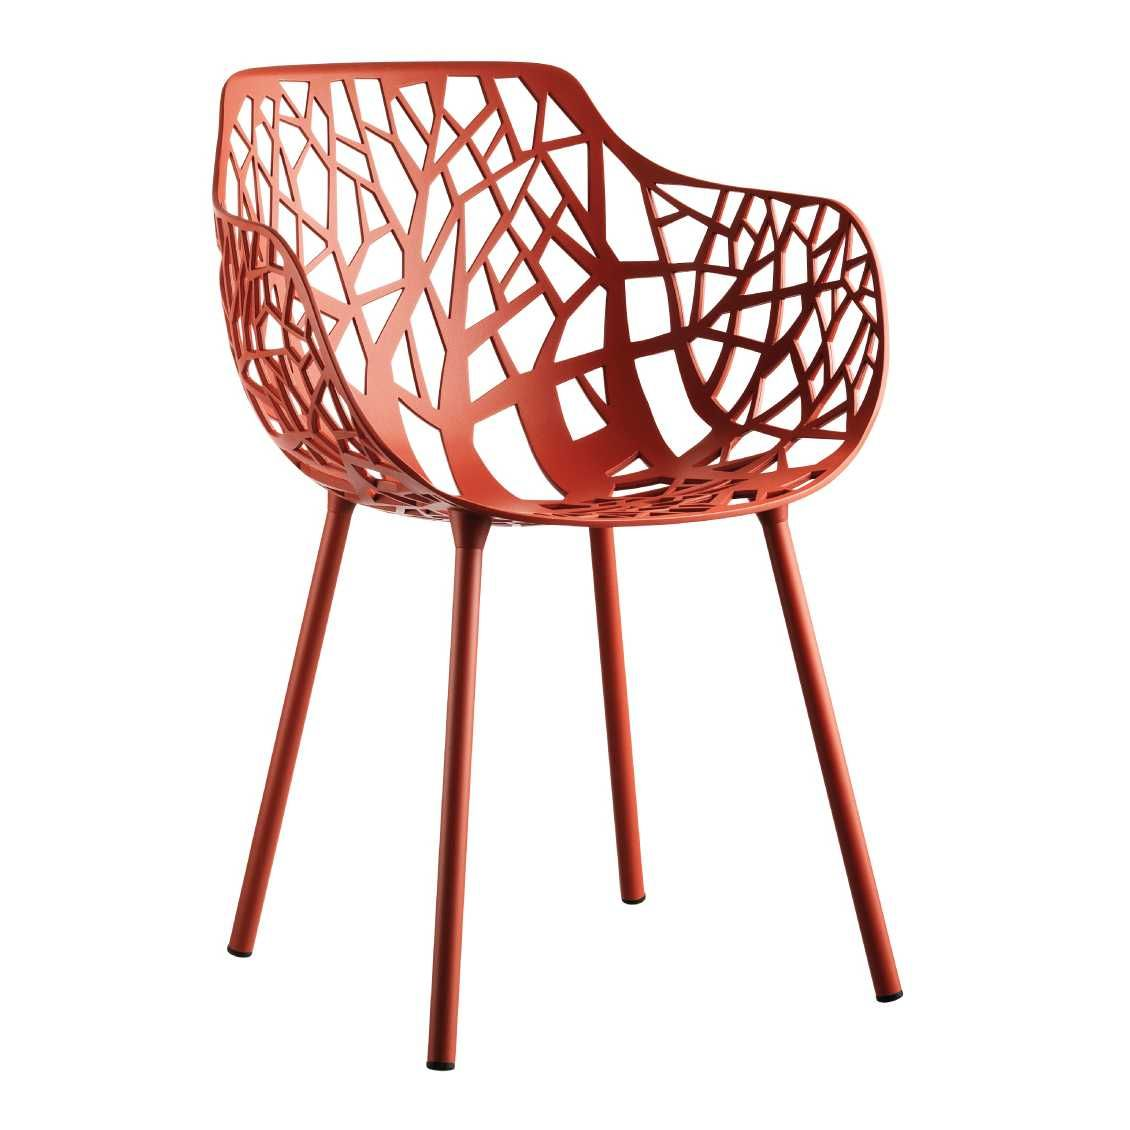 Forest Chair Chairs Design Pinterest Armchairs And Doors # Muebles Sedutti